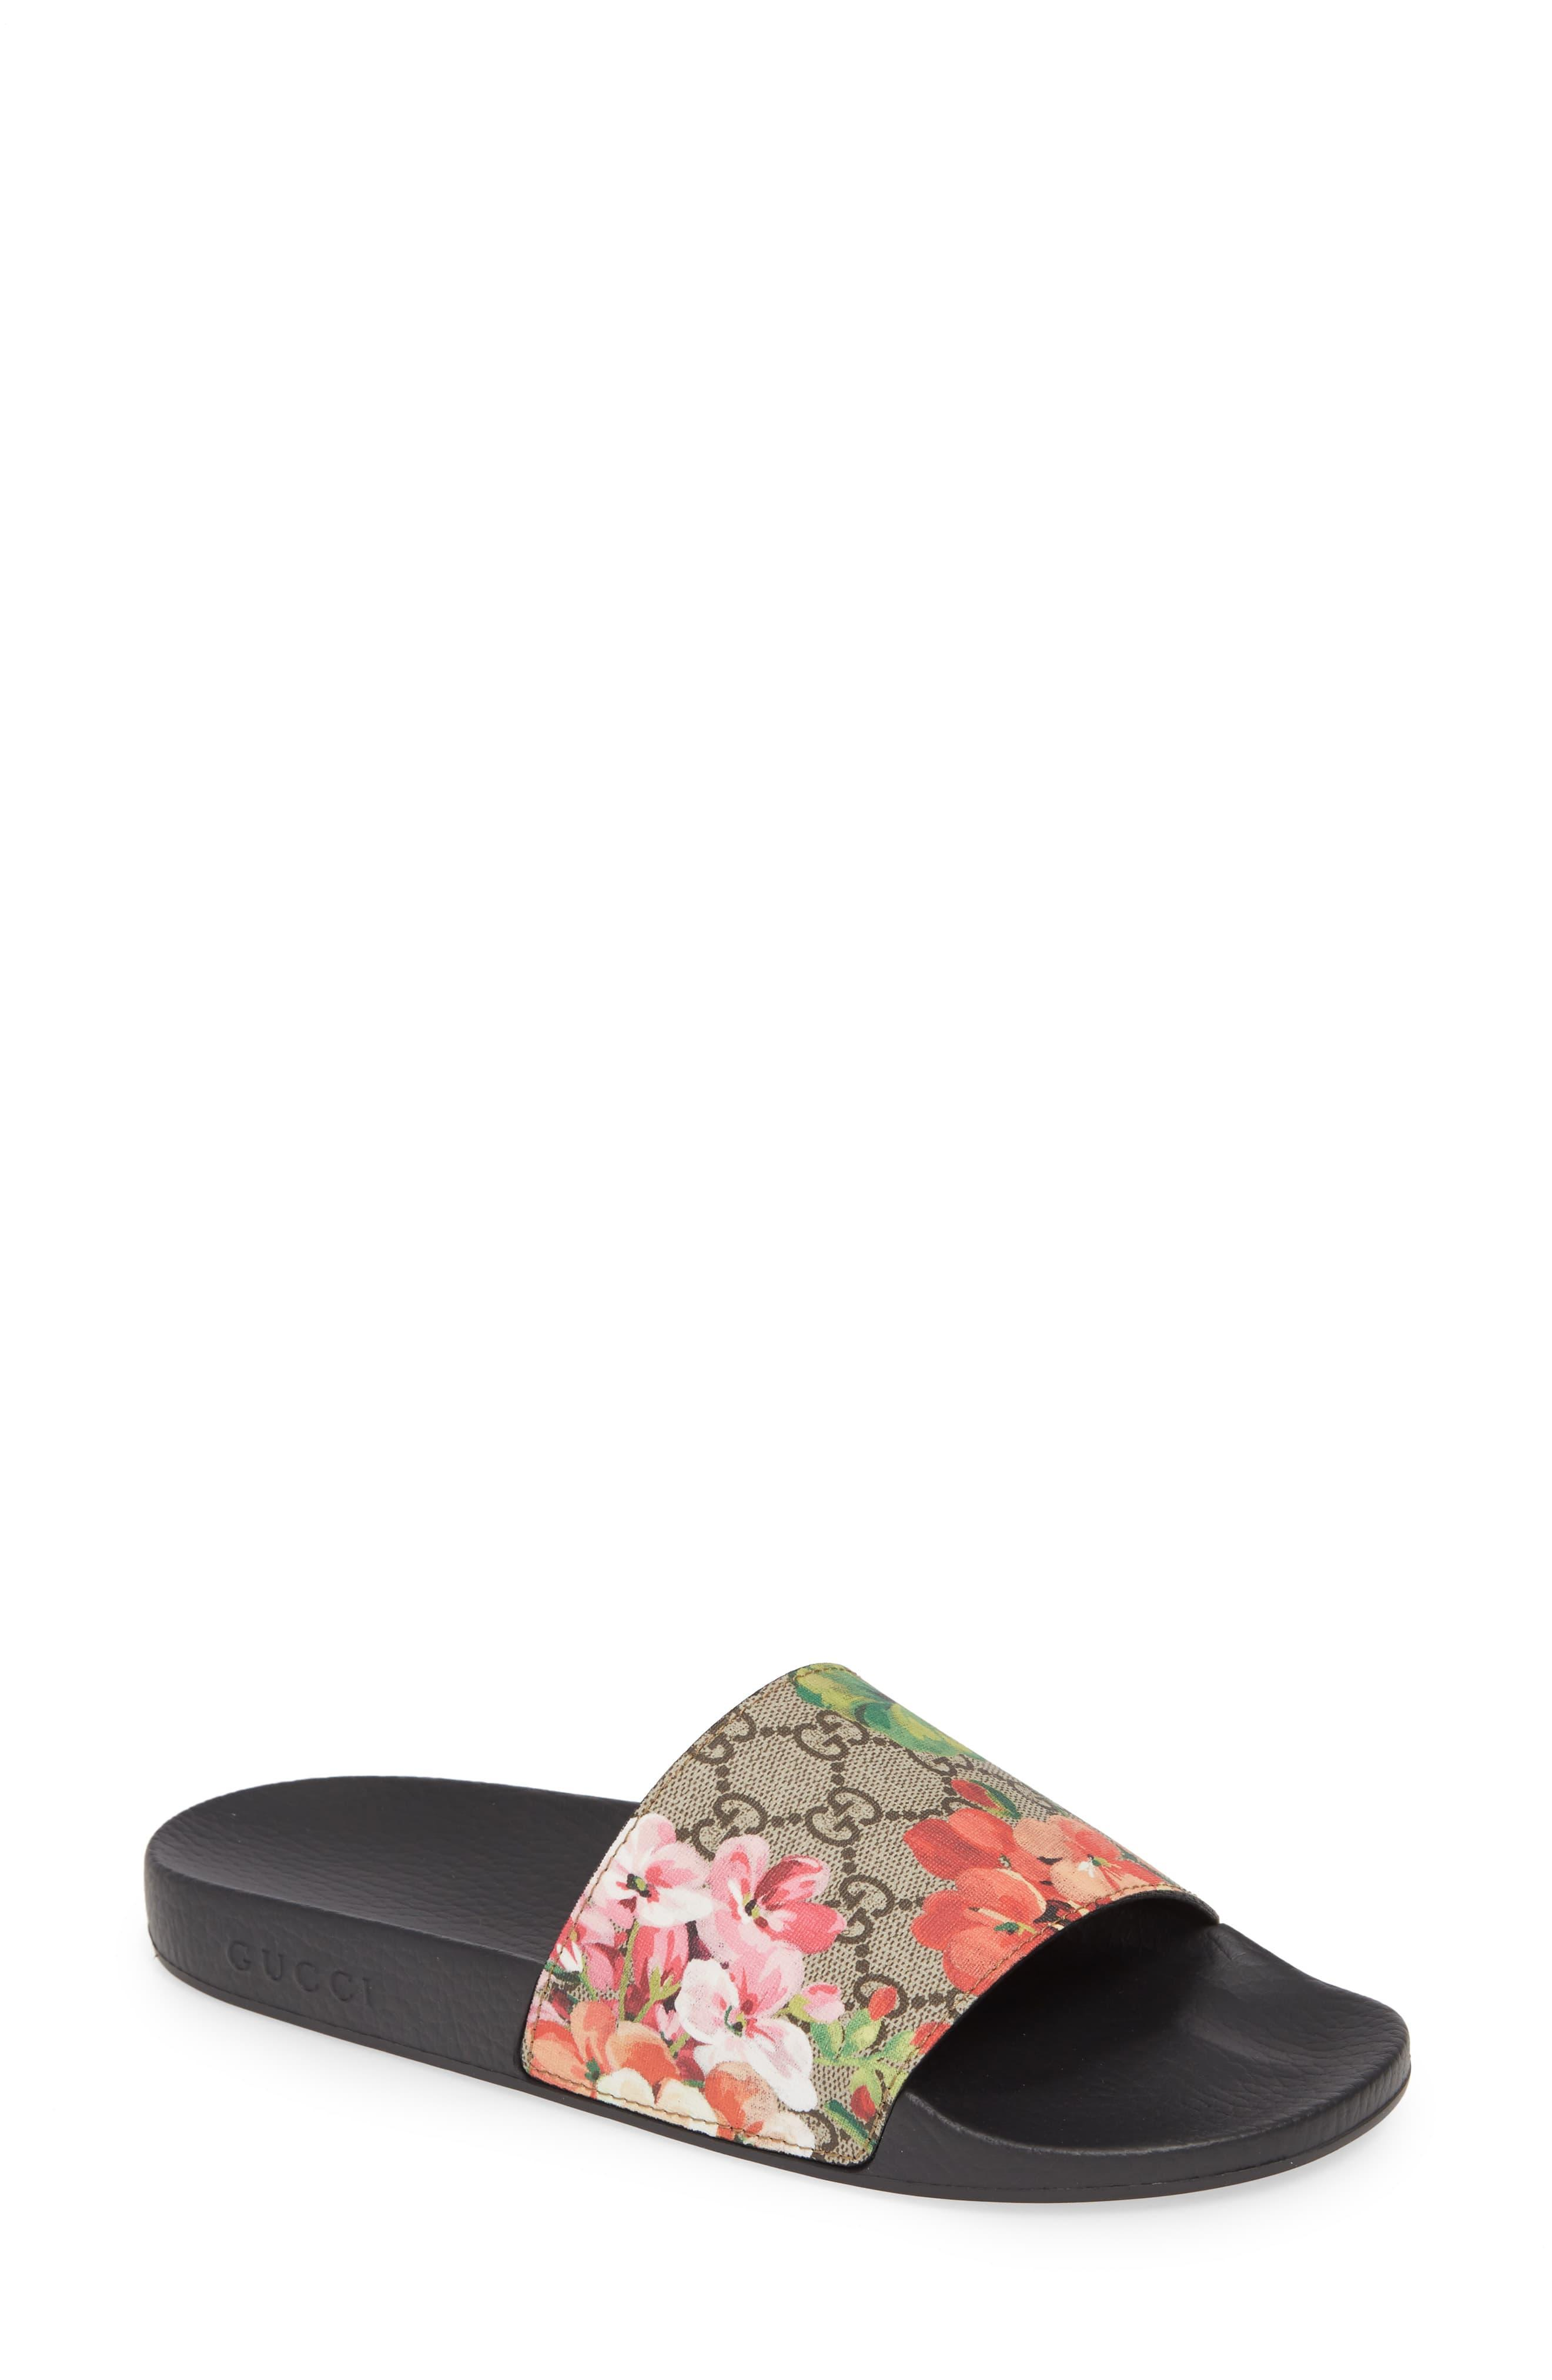 3c3f042e4 Gucci. Women's Blooms Supreme Canvas Slides